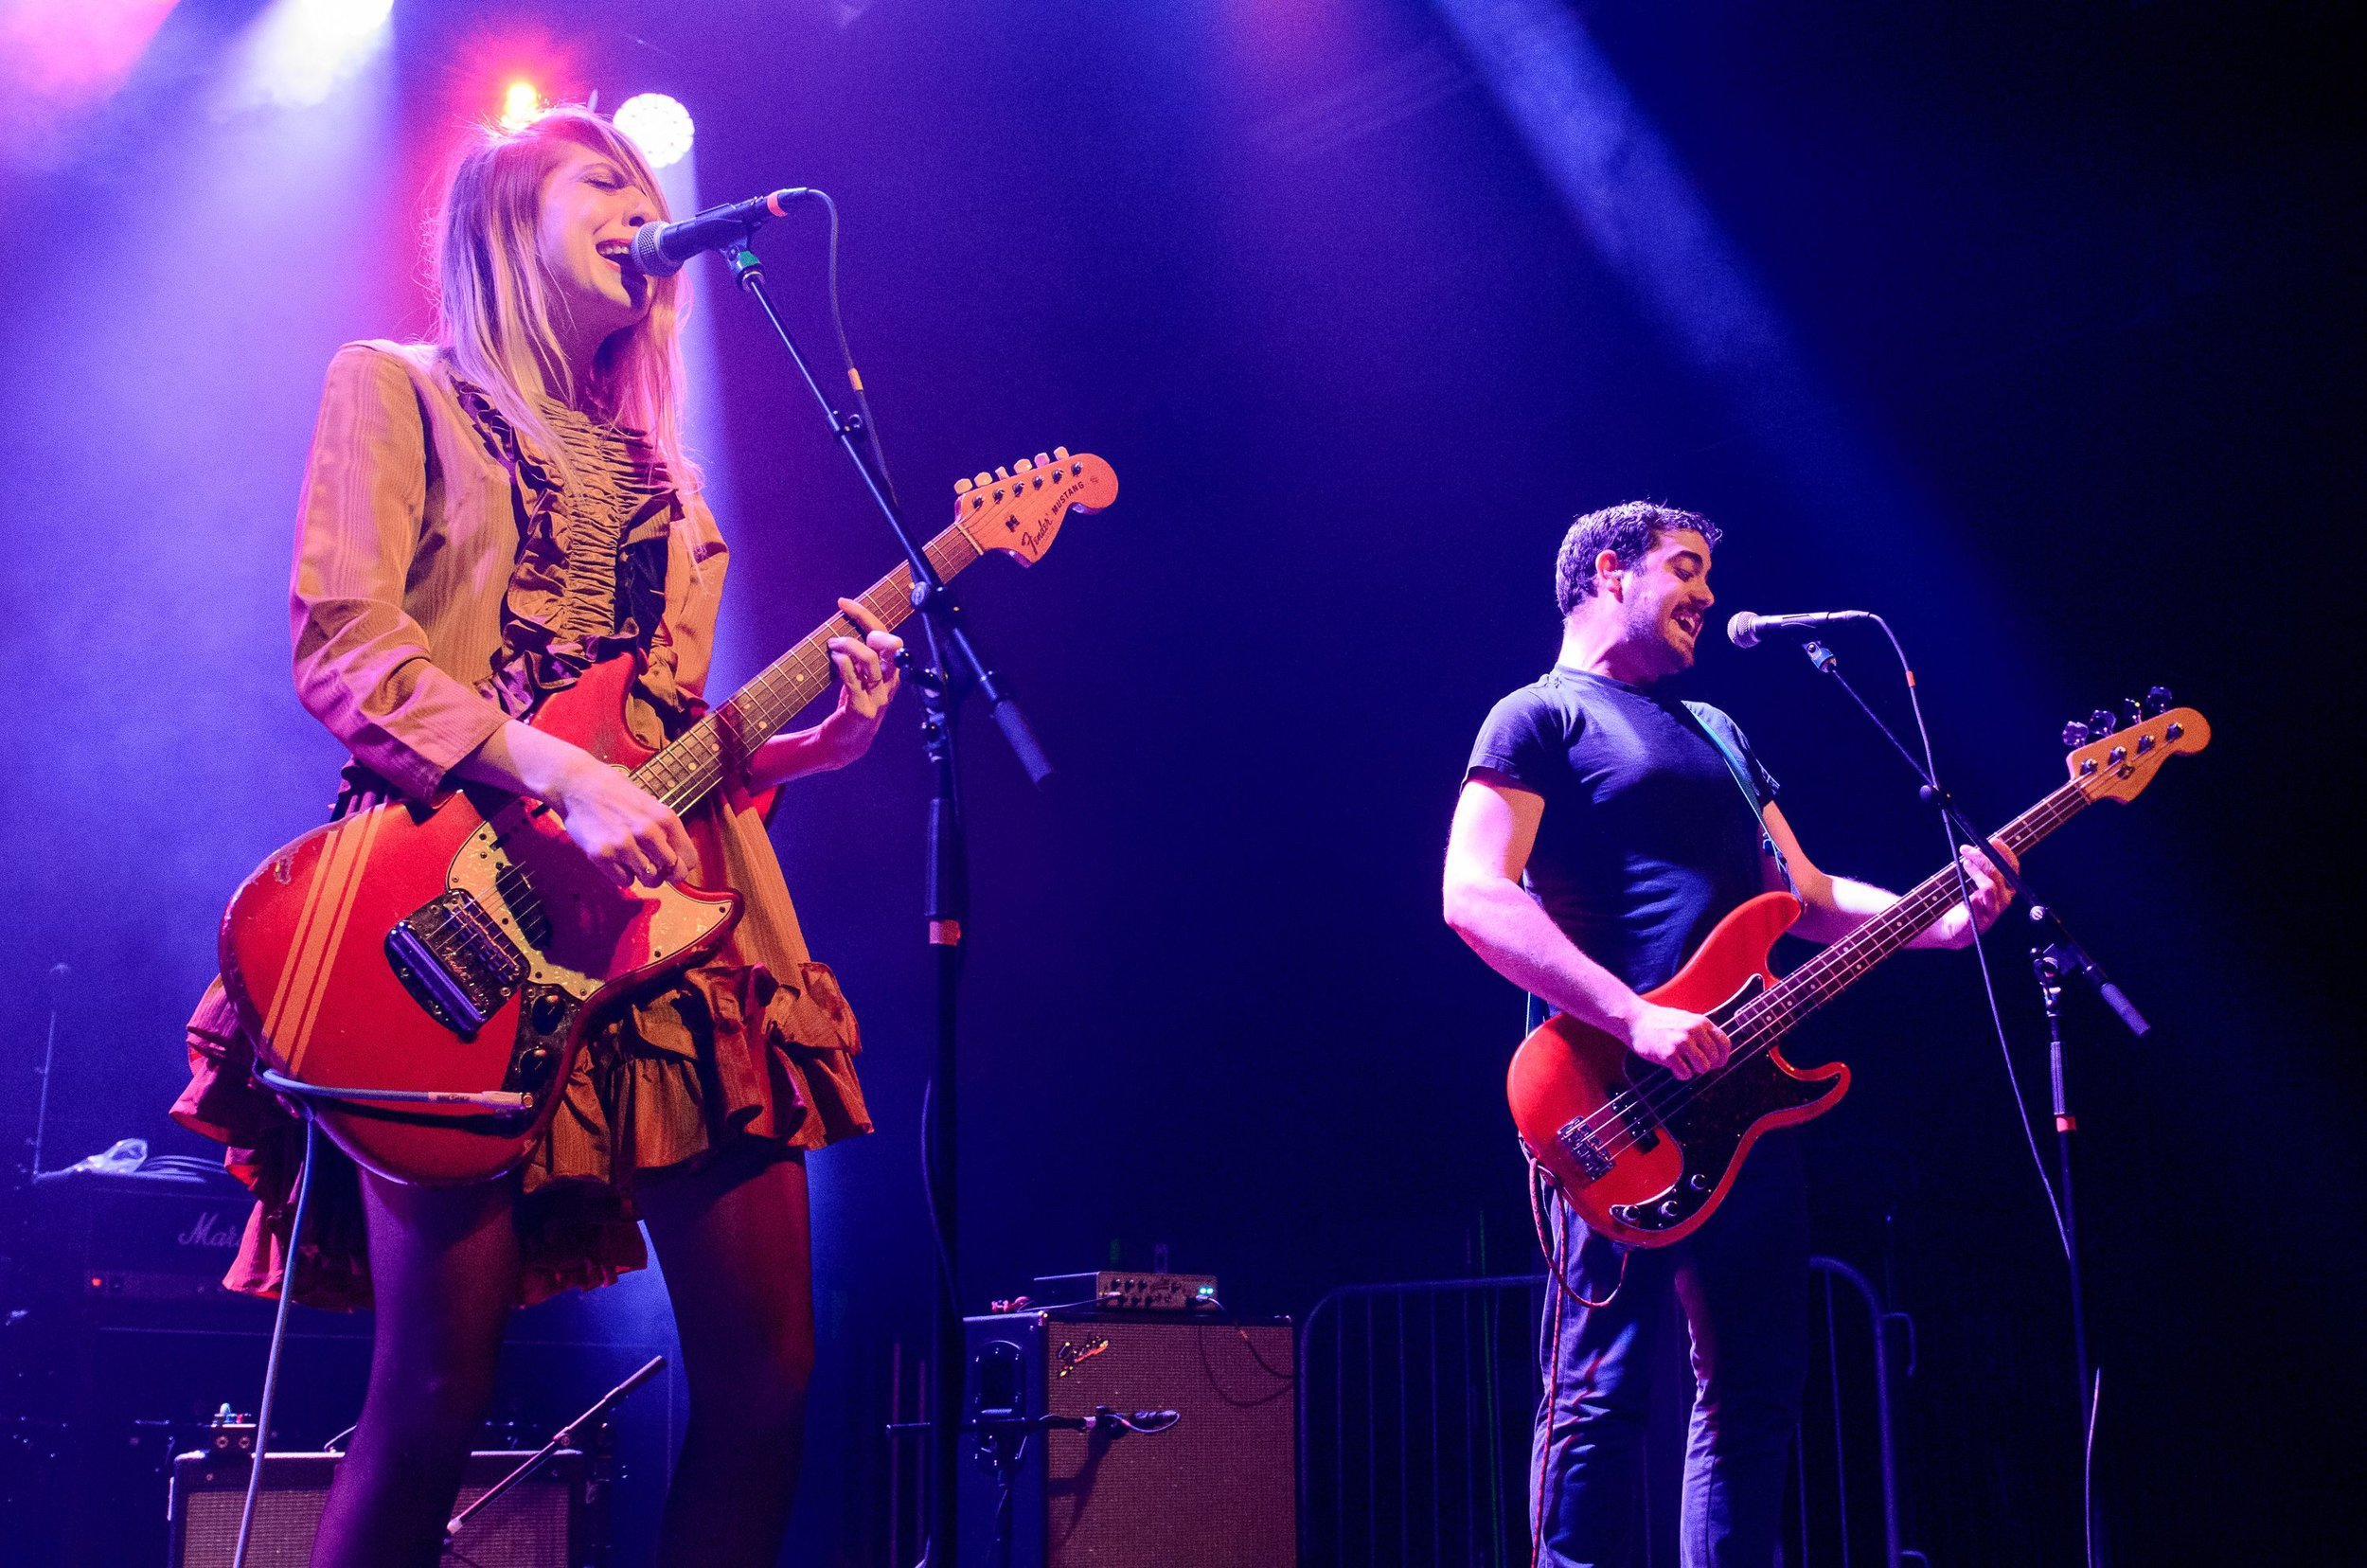 charly bliss eva hendricks kelsey randall brooklyn steel concert jawbreaker tour show concert